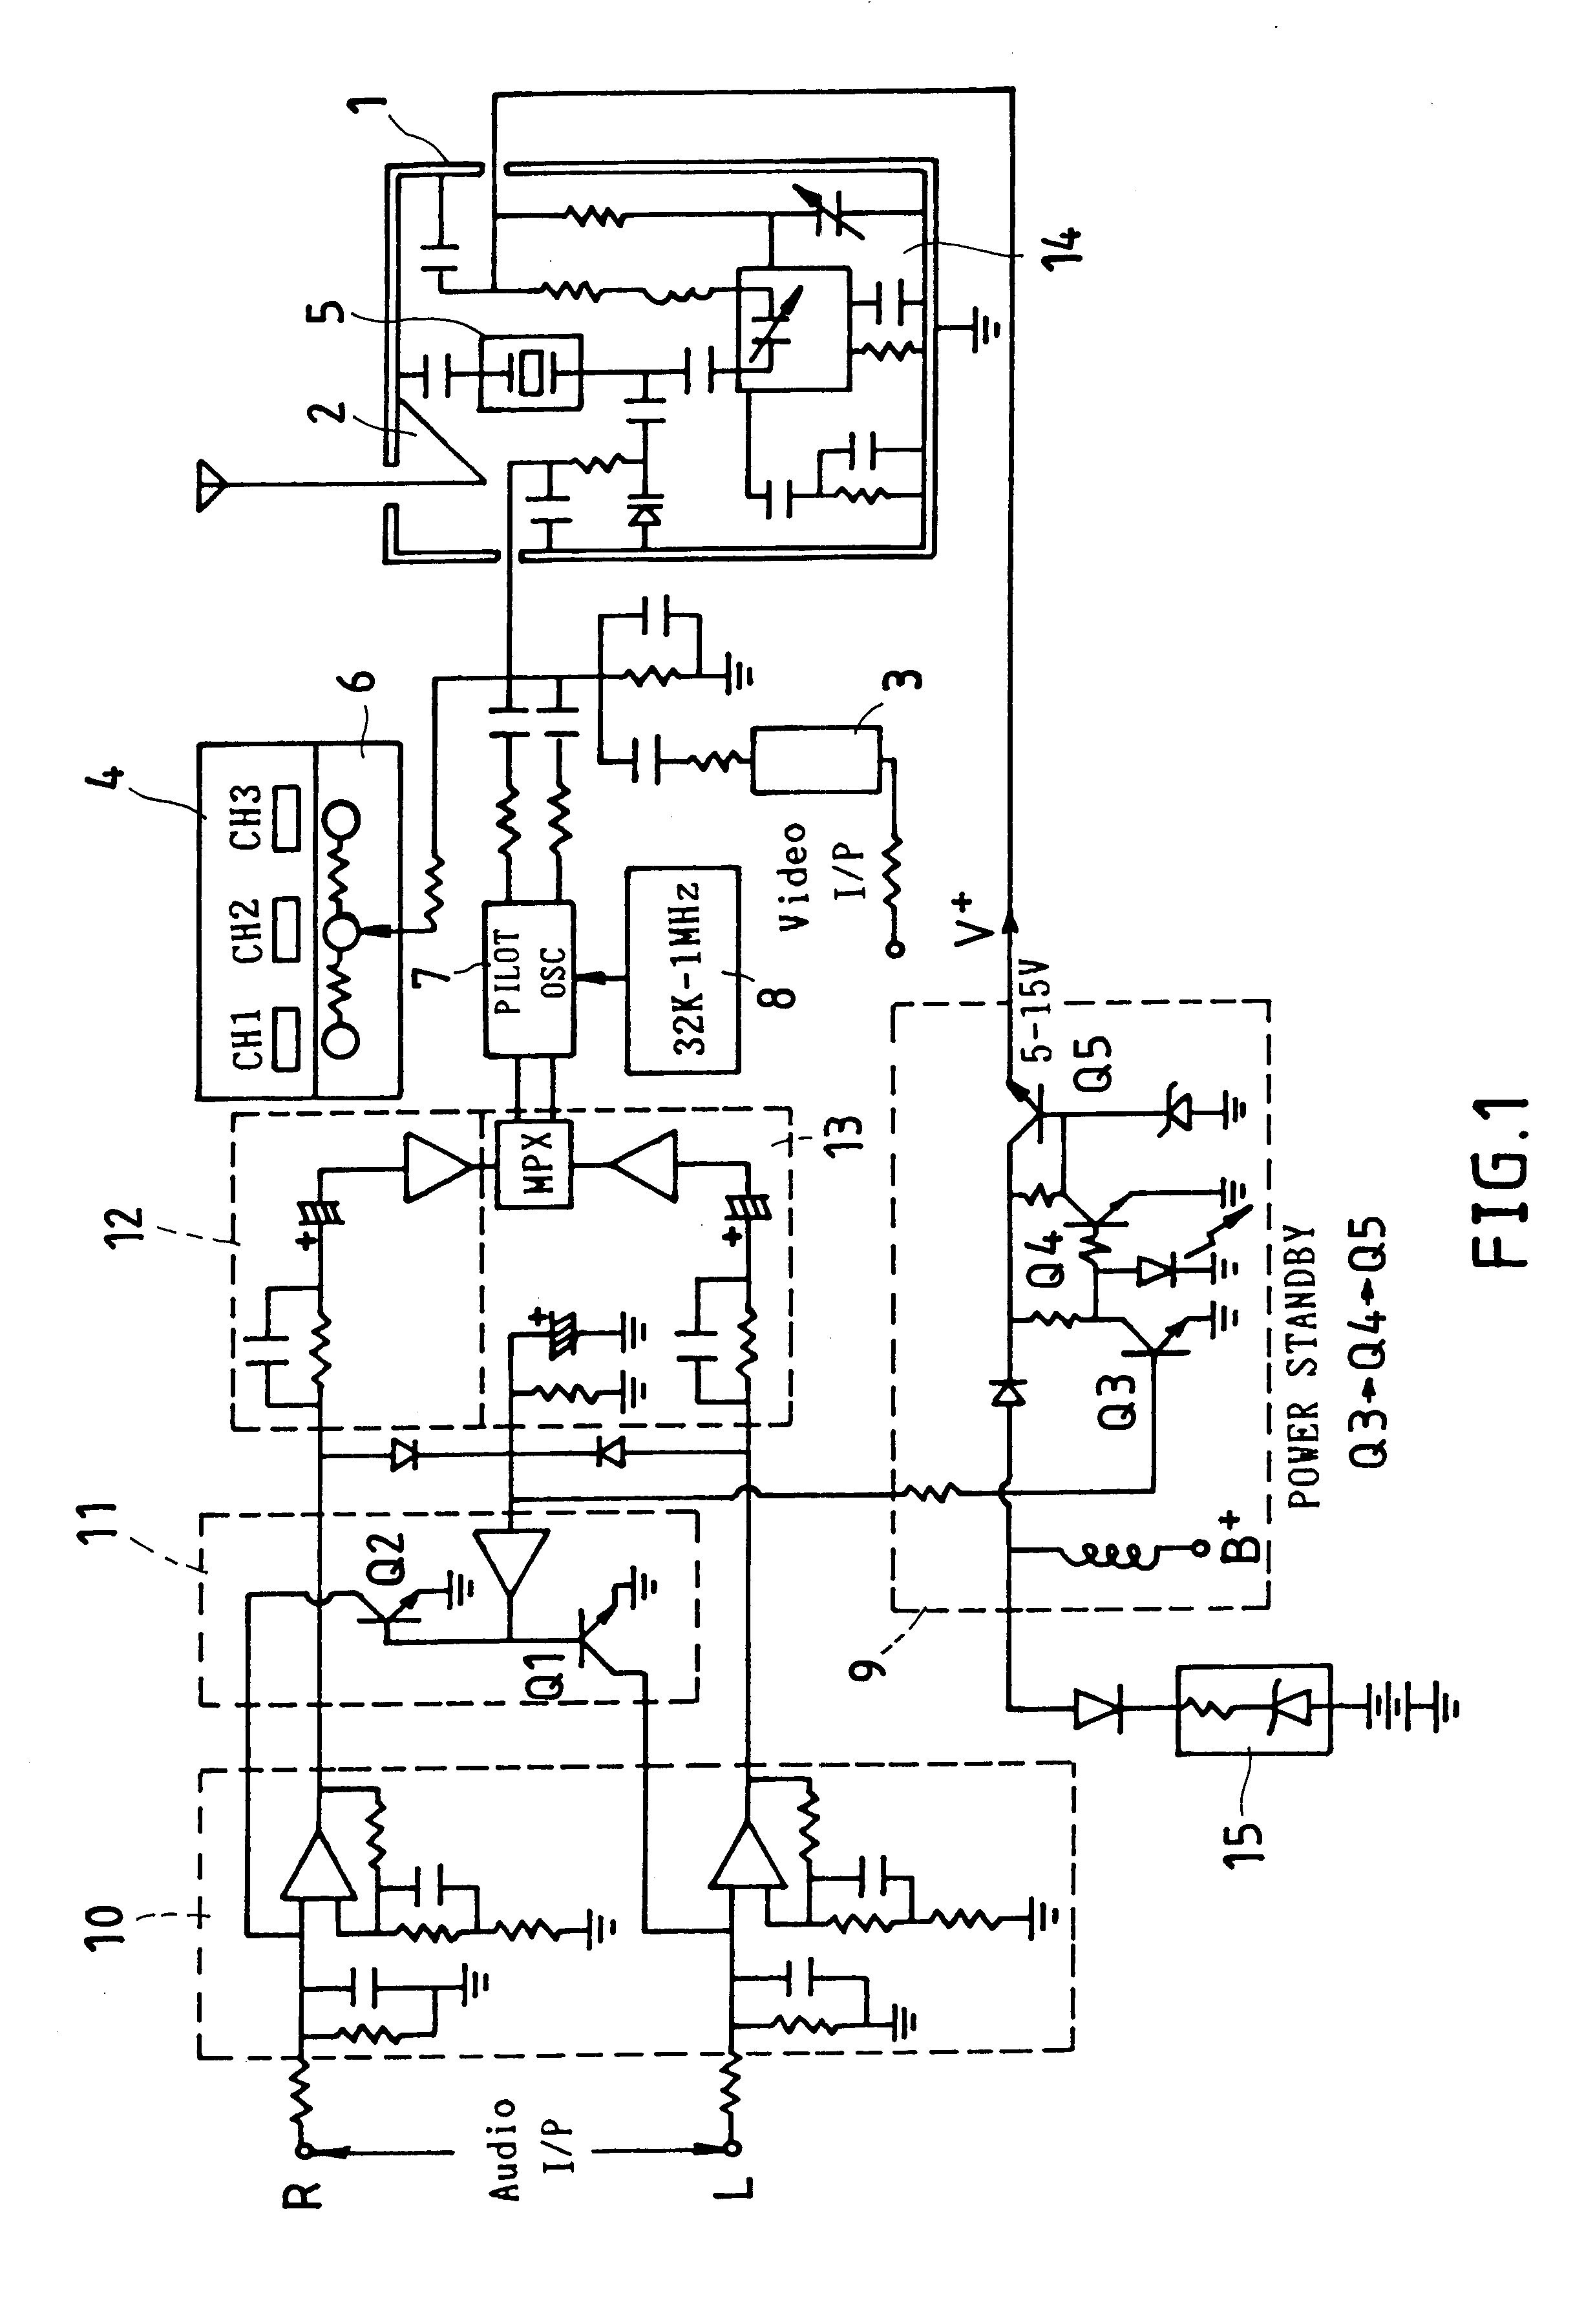 patent us6337913  receiver circuit system with floating frequency tracing